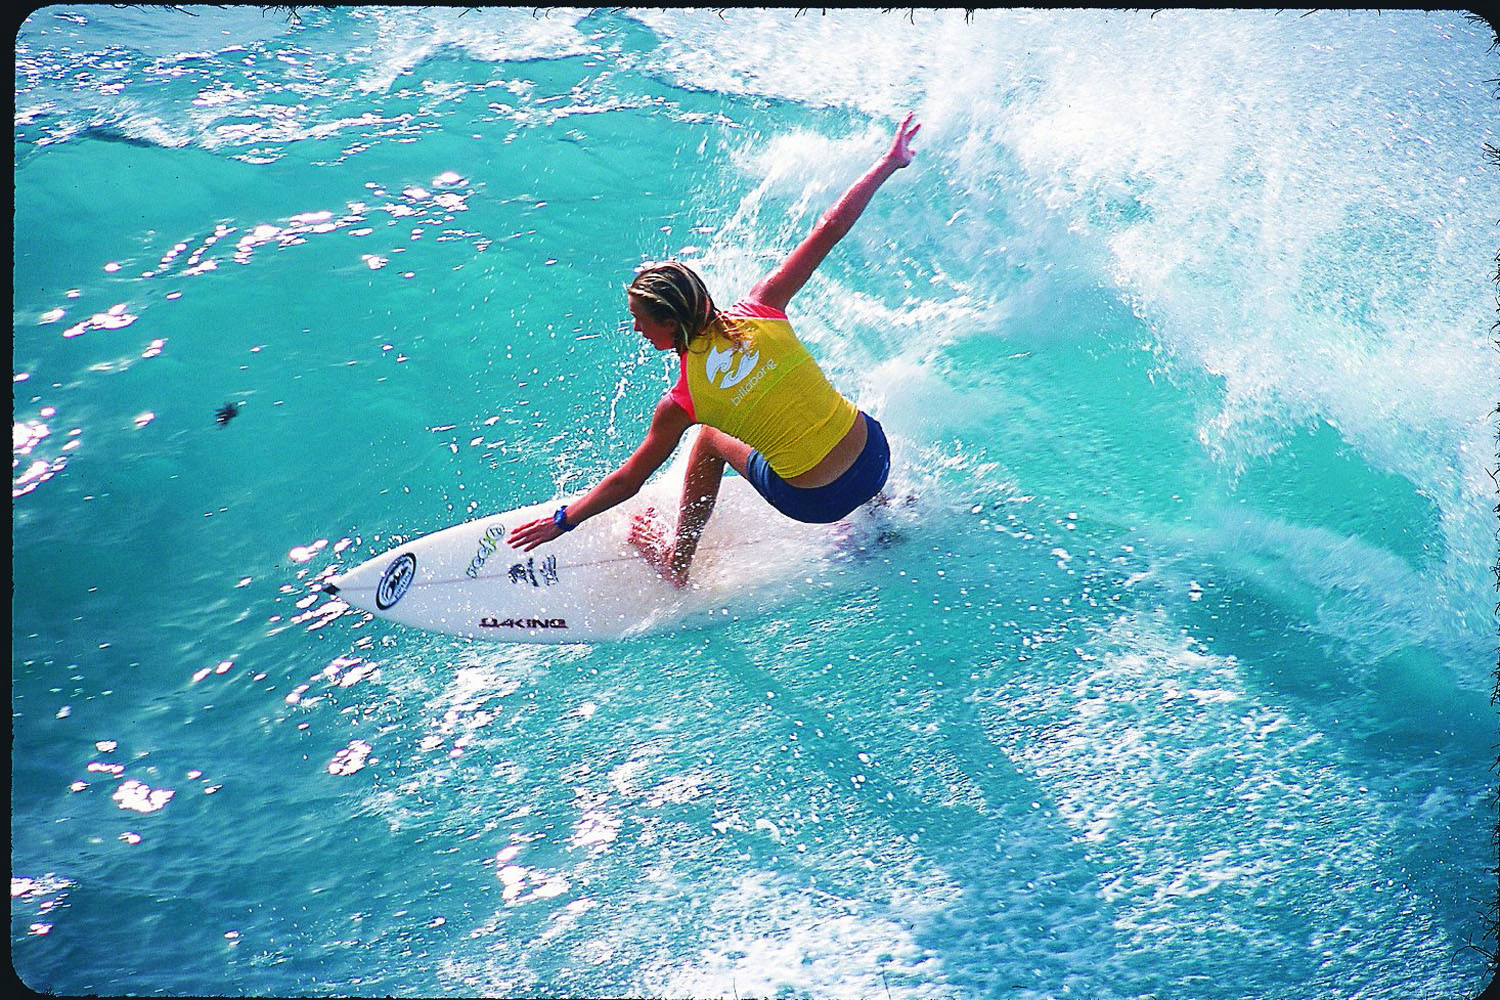 Billabong Girls Pro Maui